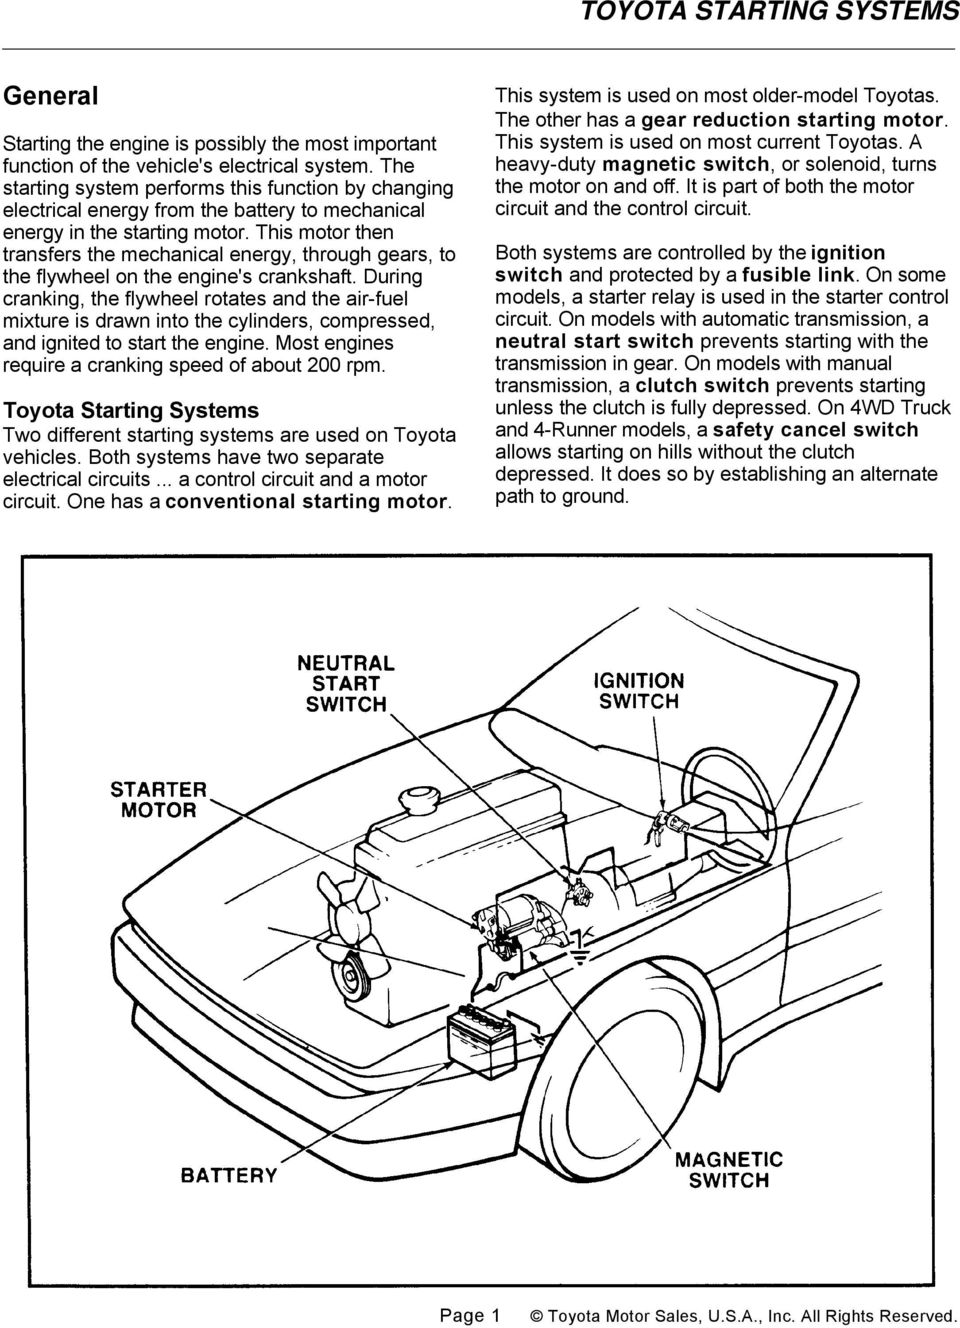 Toyota Starting Systems General Pdf Windshield Wiper Switch Further Solar Charge Controller Circuit This Motor Then Transfers The Mechanical Energy Through Gears To Flywheel On